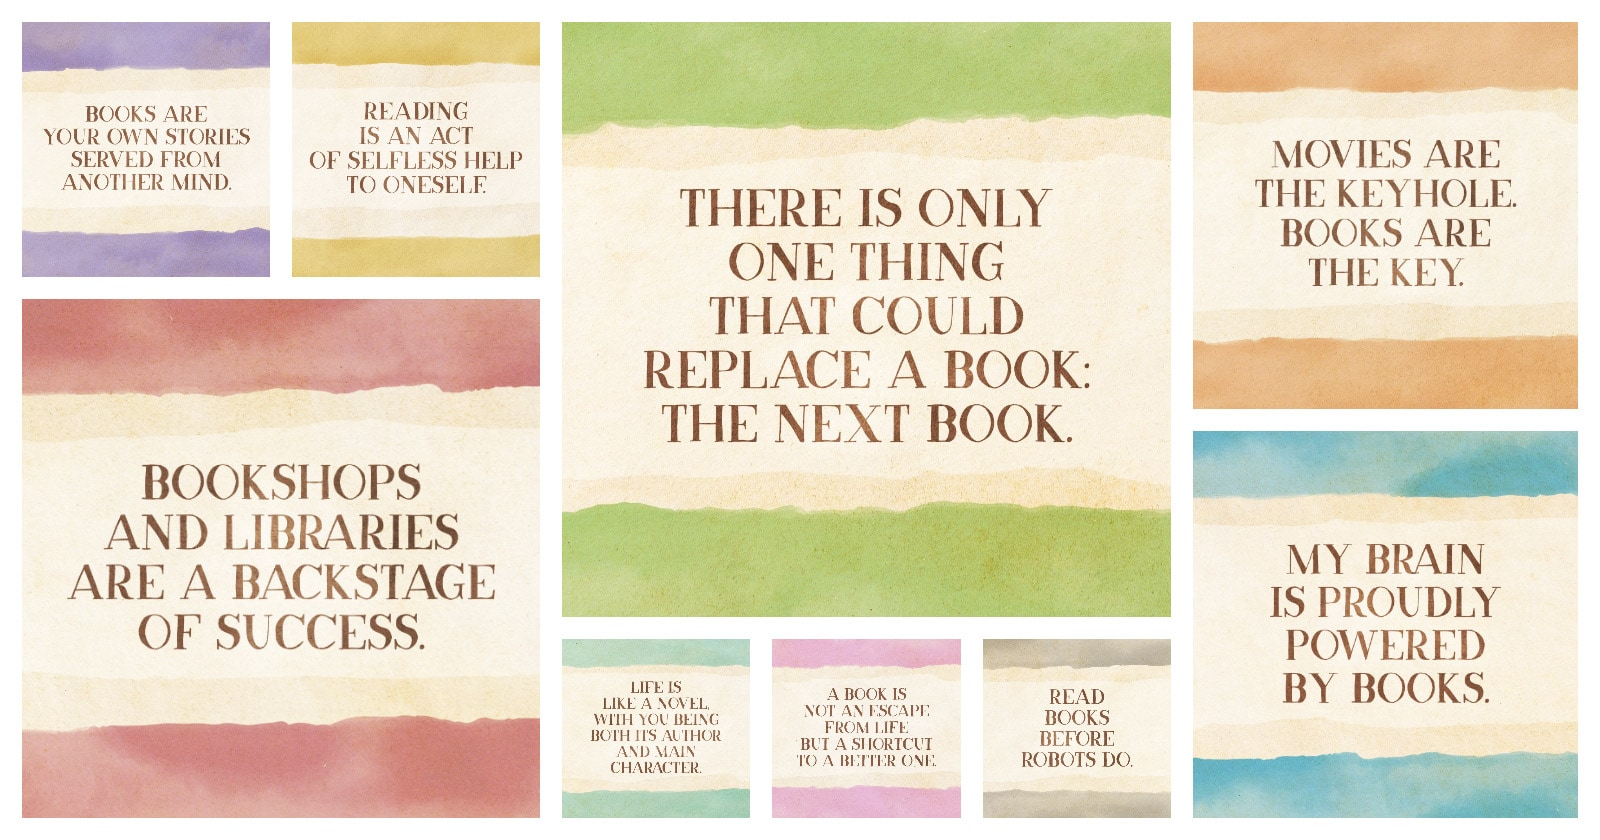 Quotes about books by Piotr Kowalczyk